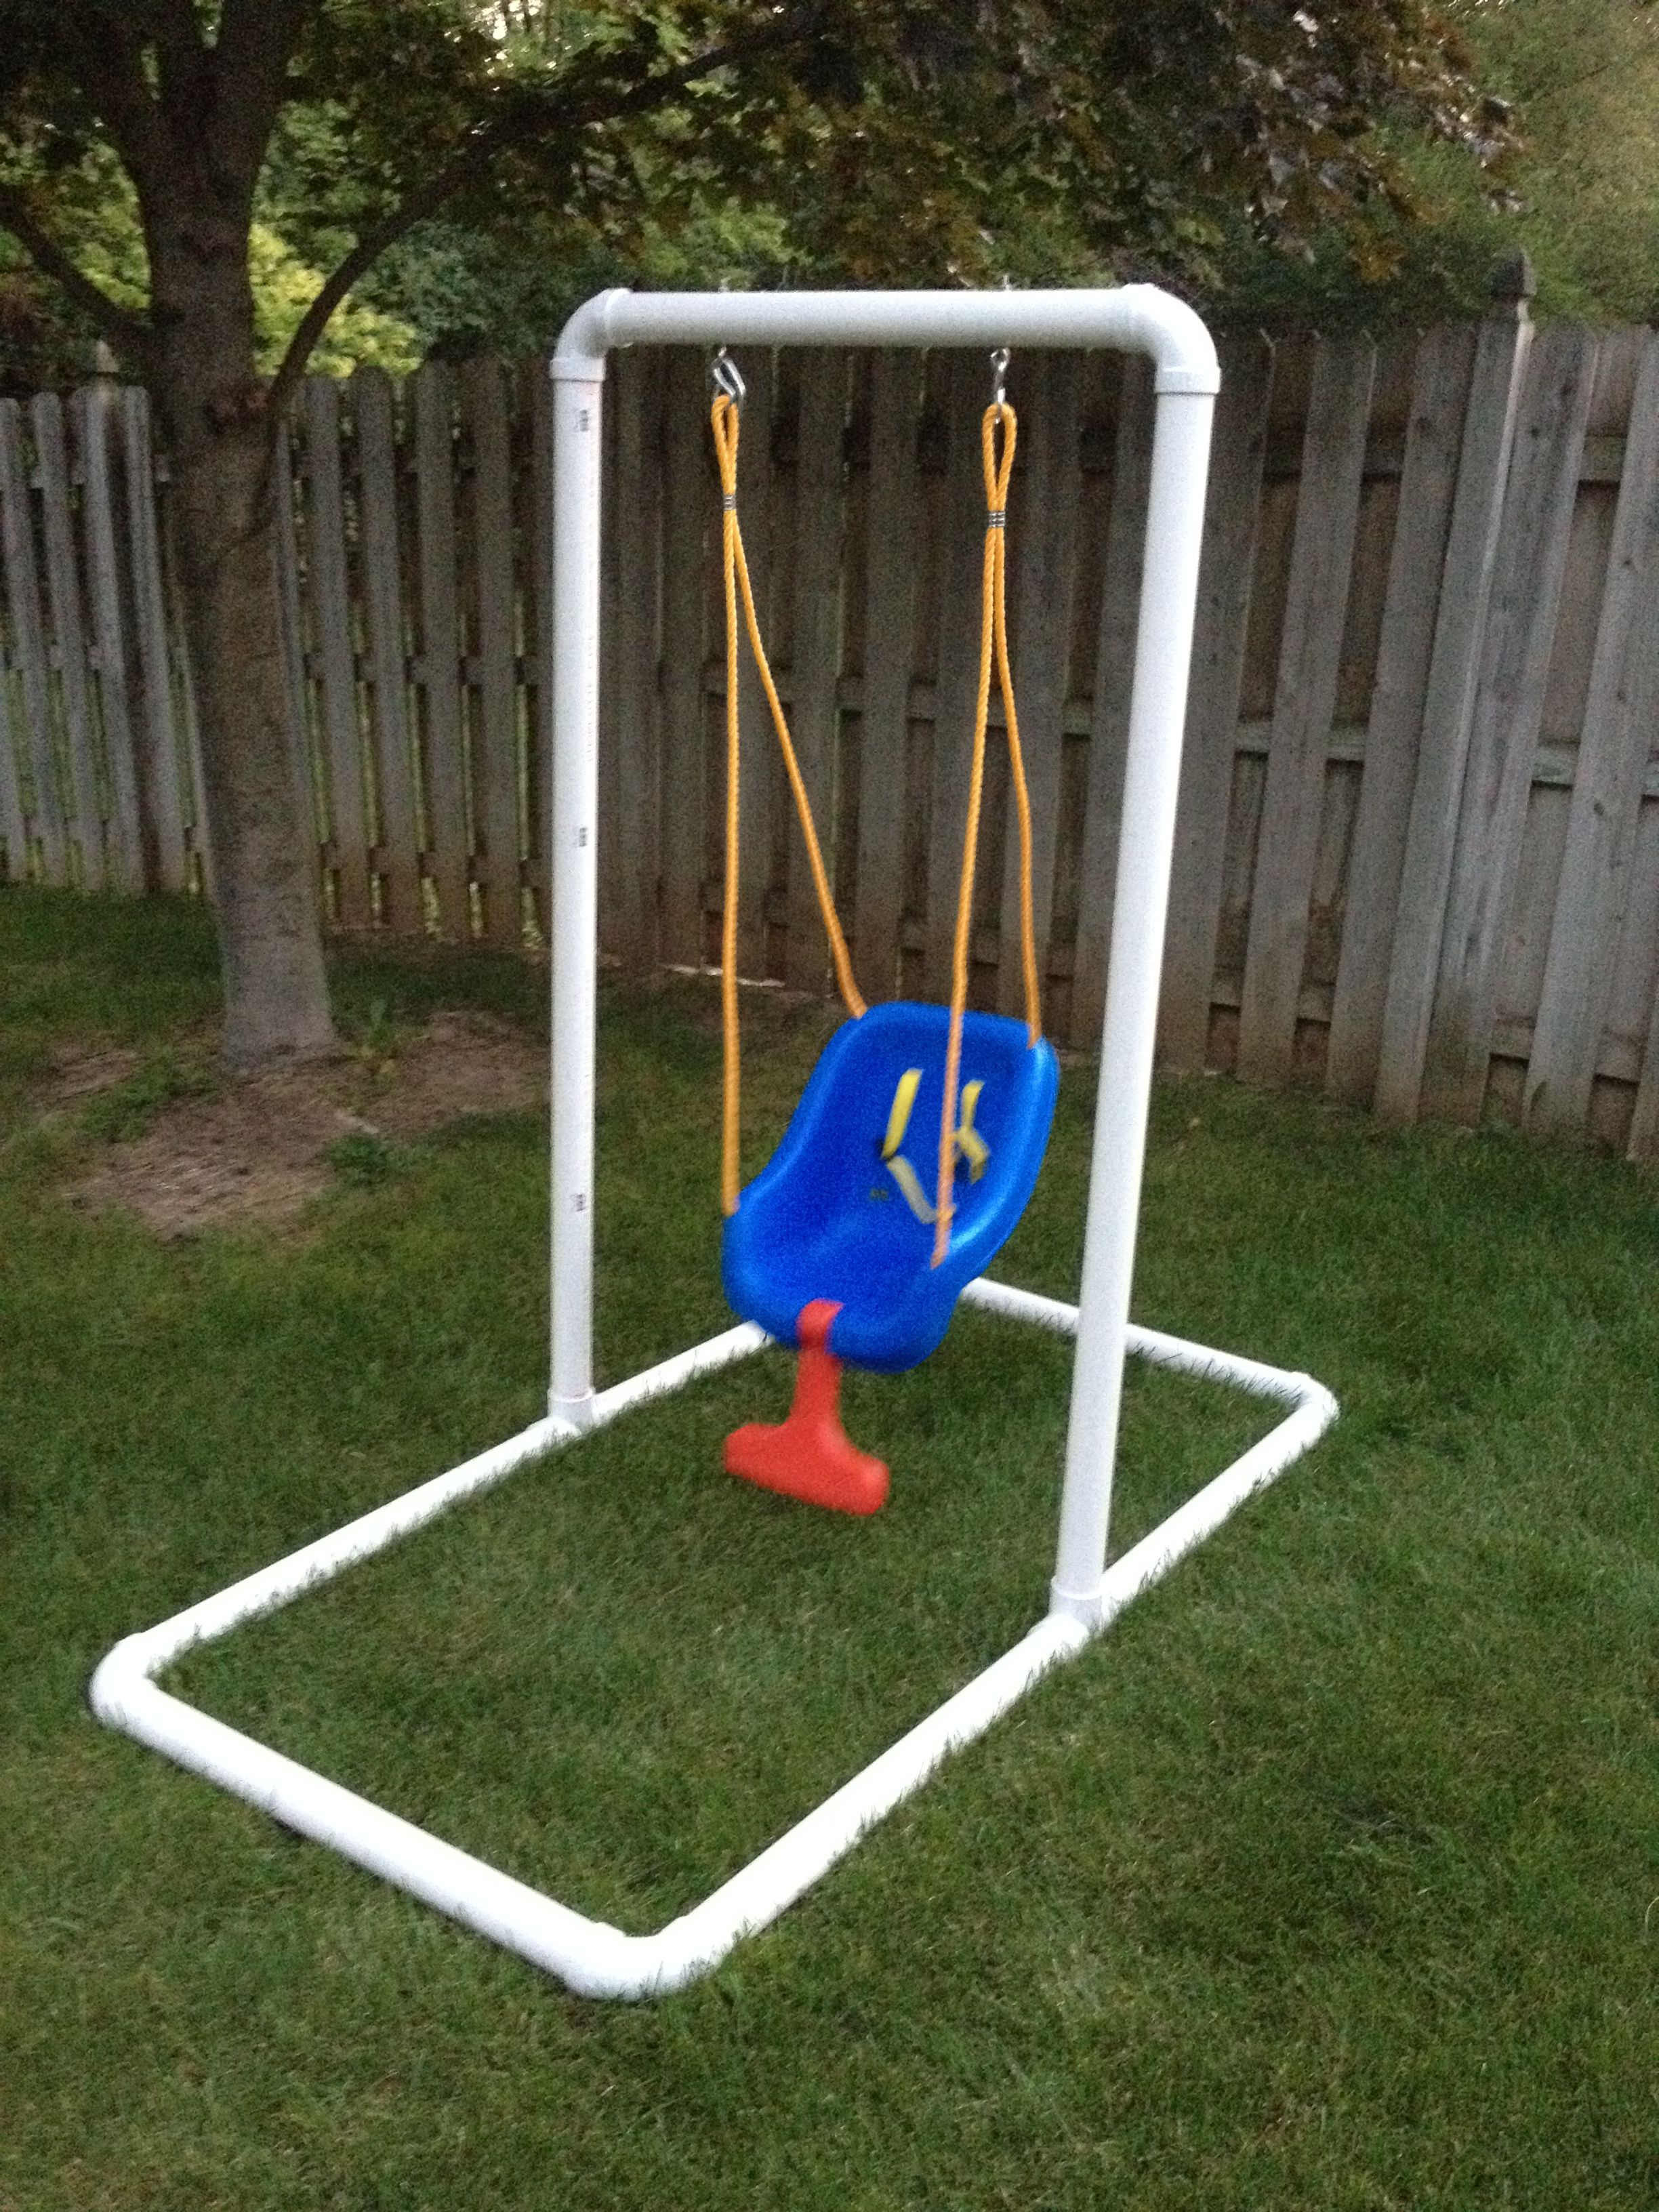 Homemade Infant Swing Stand 65 00 What You Ll Need 6 5 L